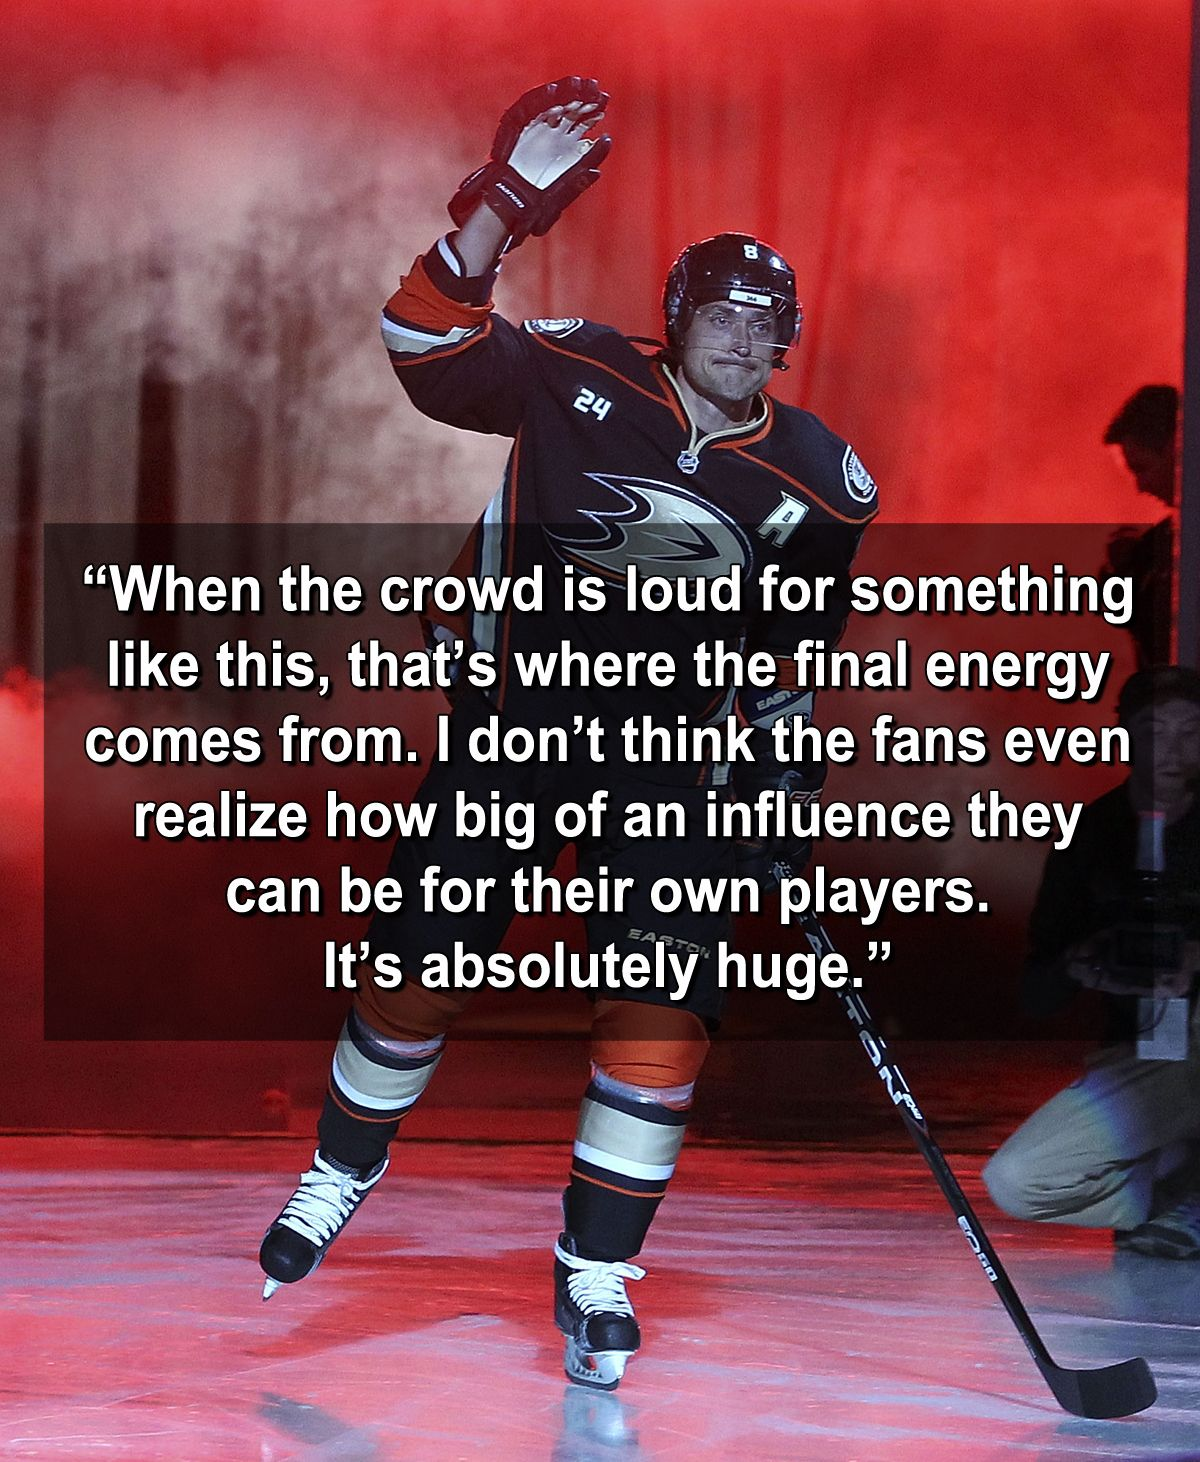 Cool quote from Teemu Selanne.